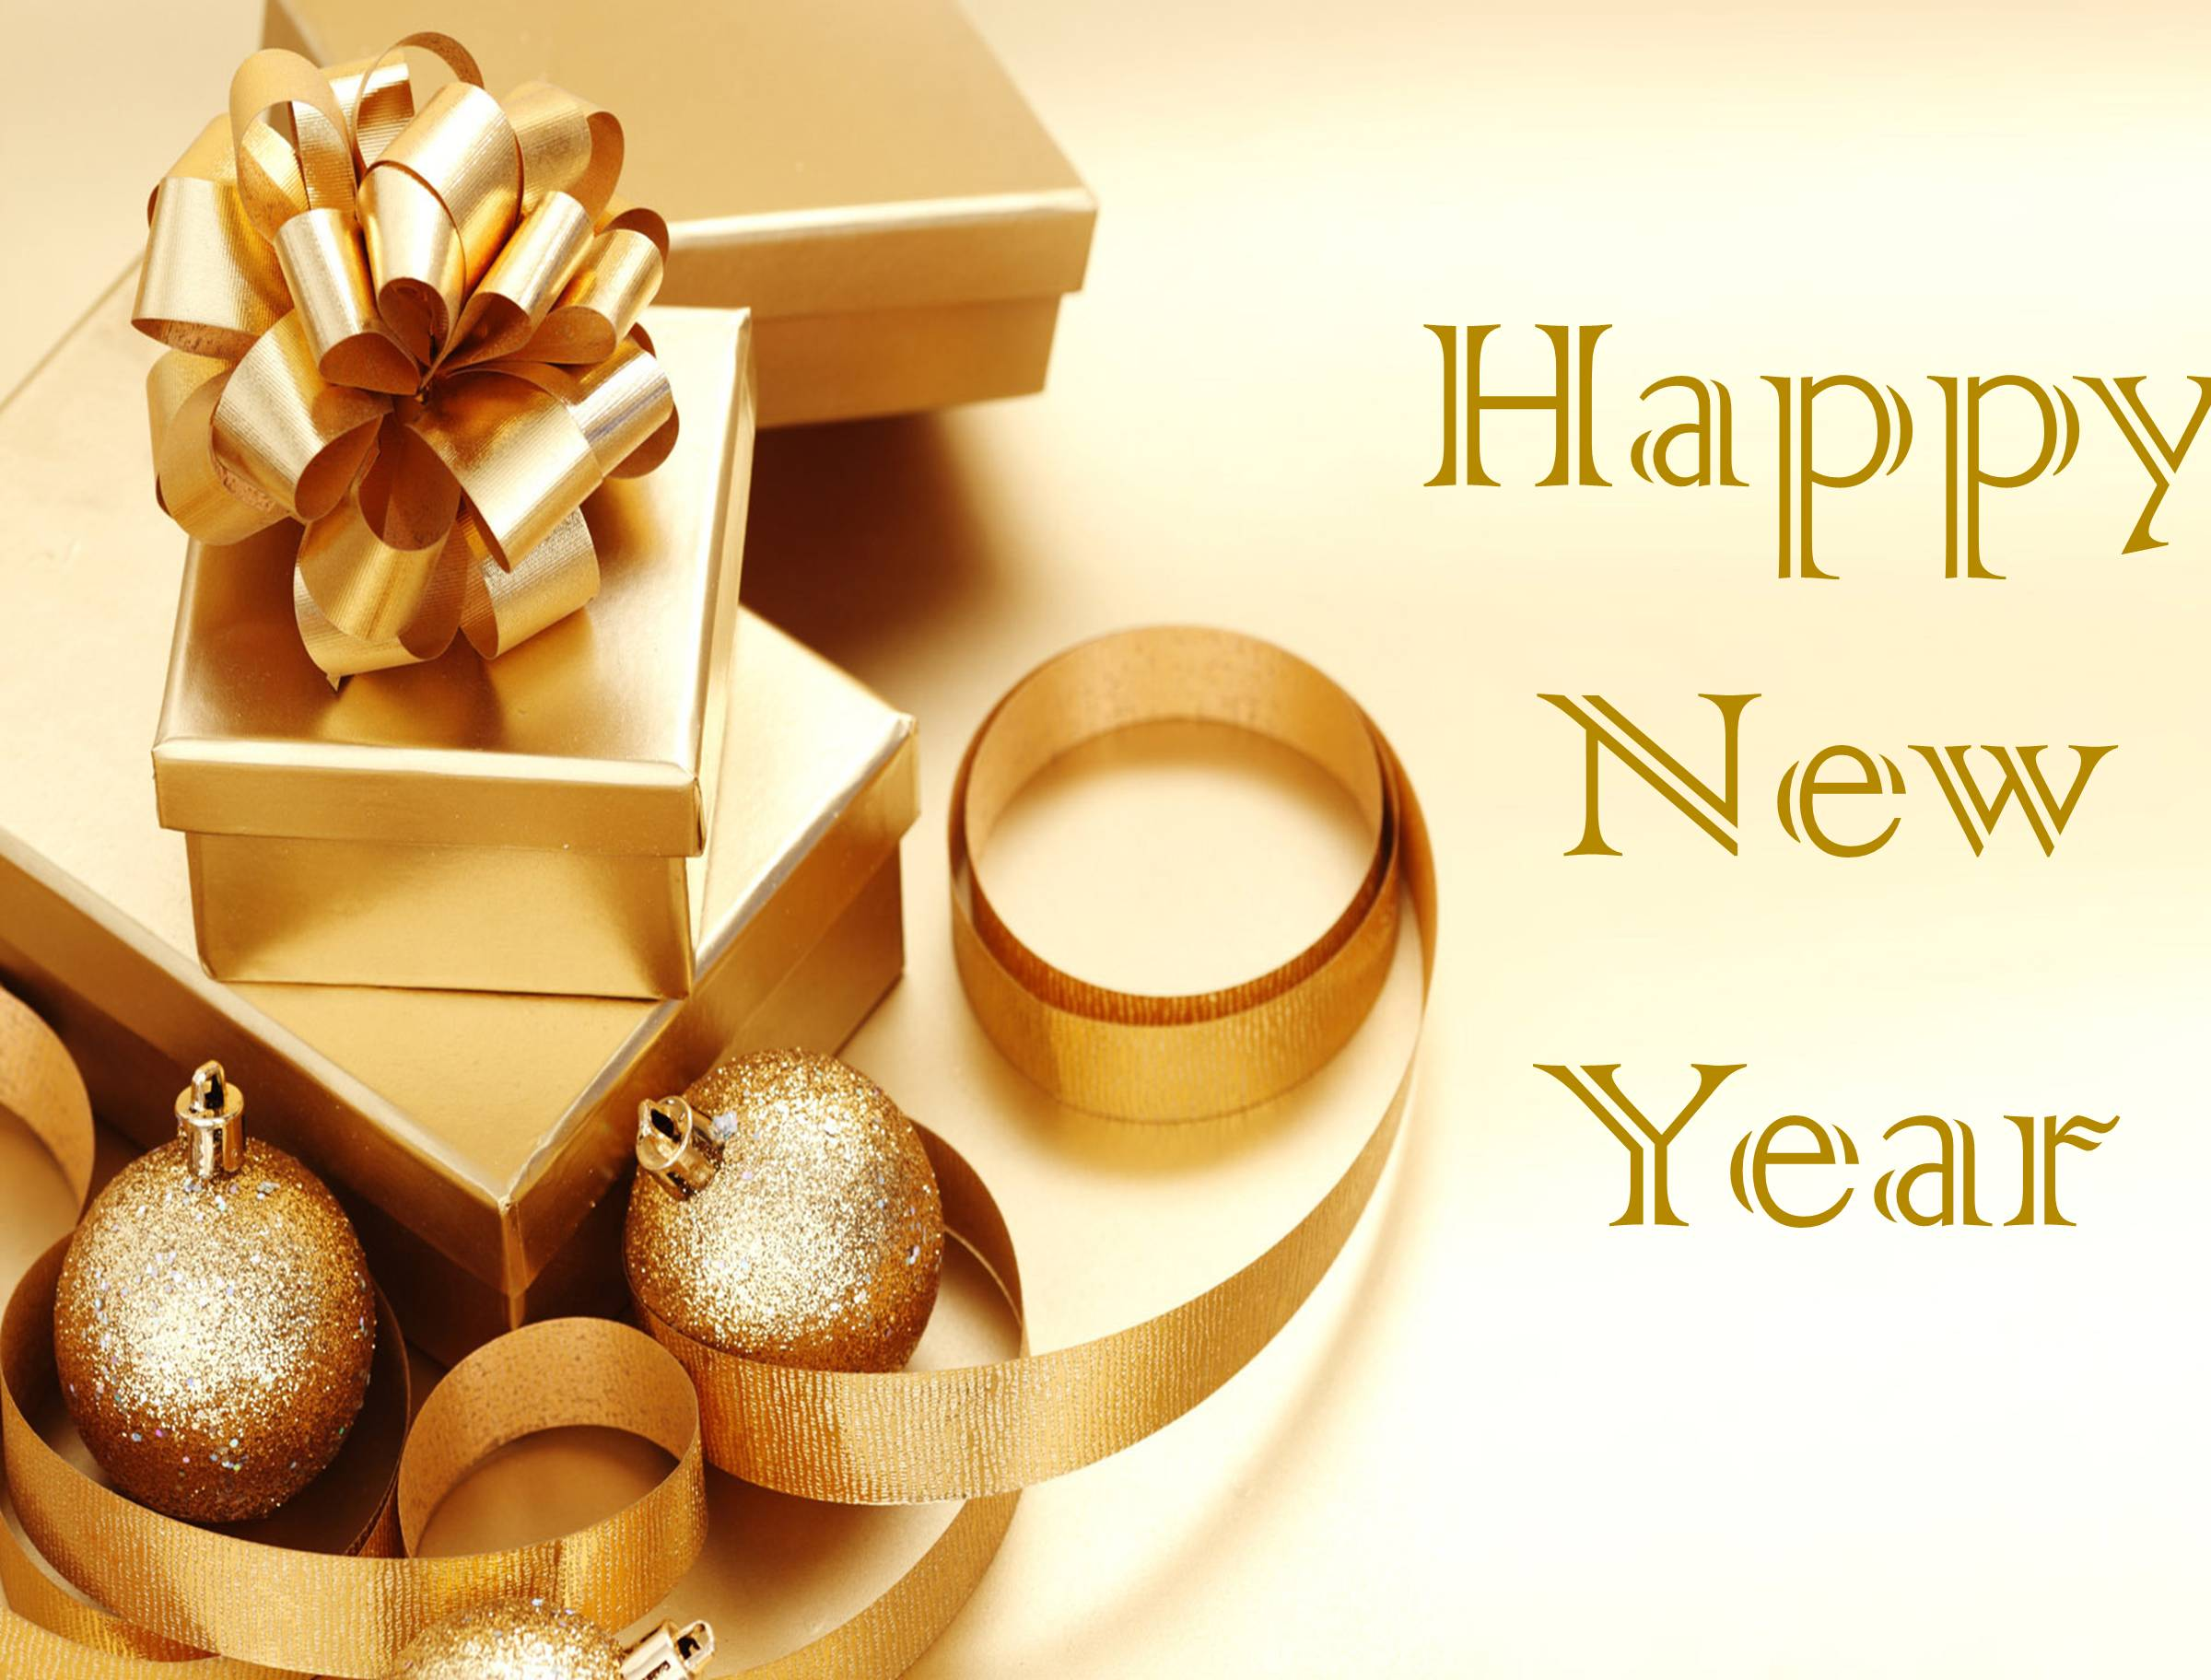 Free download Happy New Year Wallpapers 2015 Hd Images Download 2